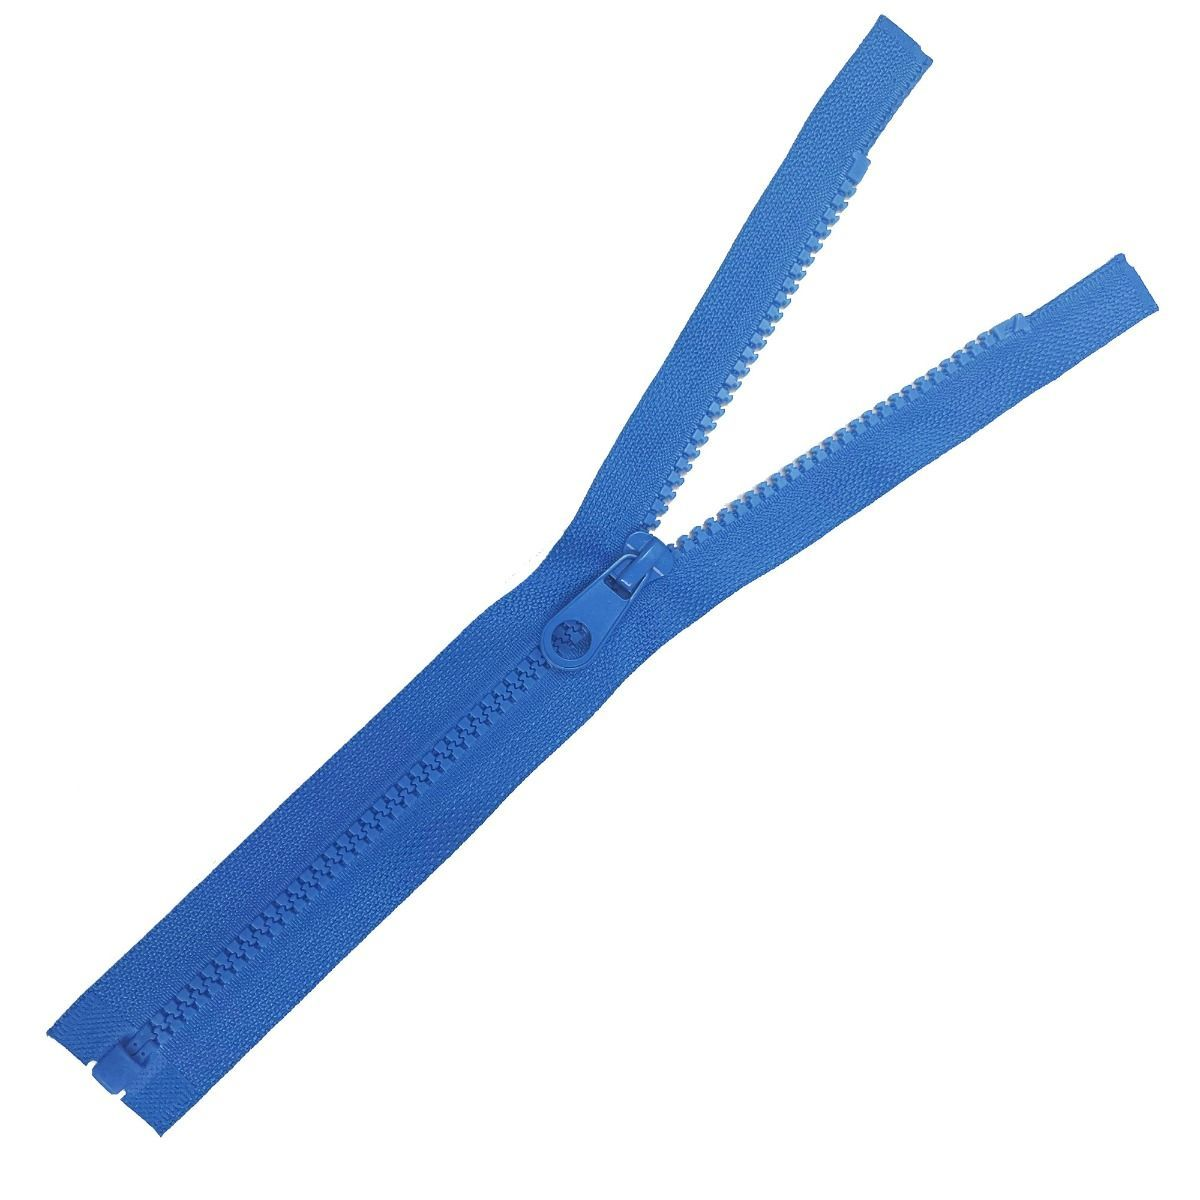 Chunky Open Ended Zips - Mid Blue - 10 Inches Up to 36 Inches